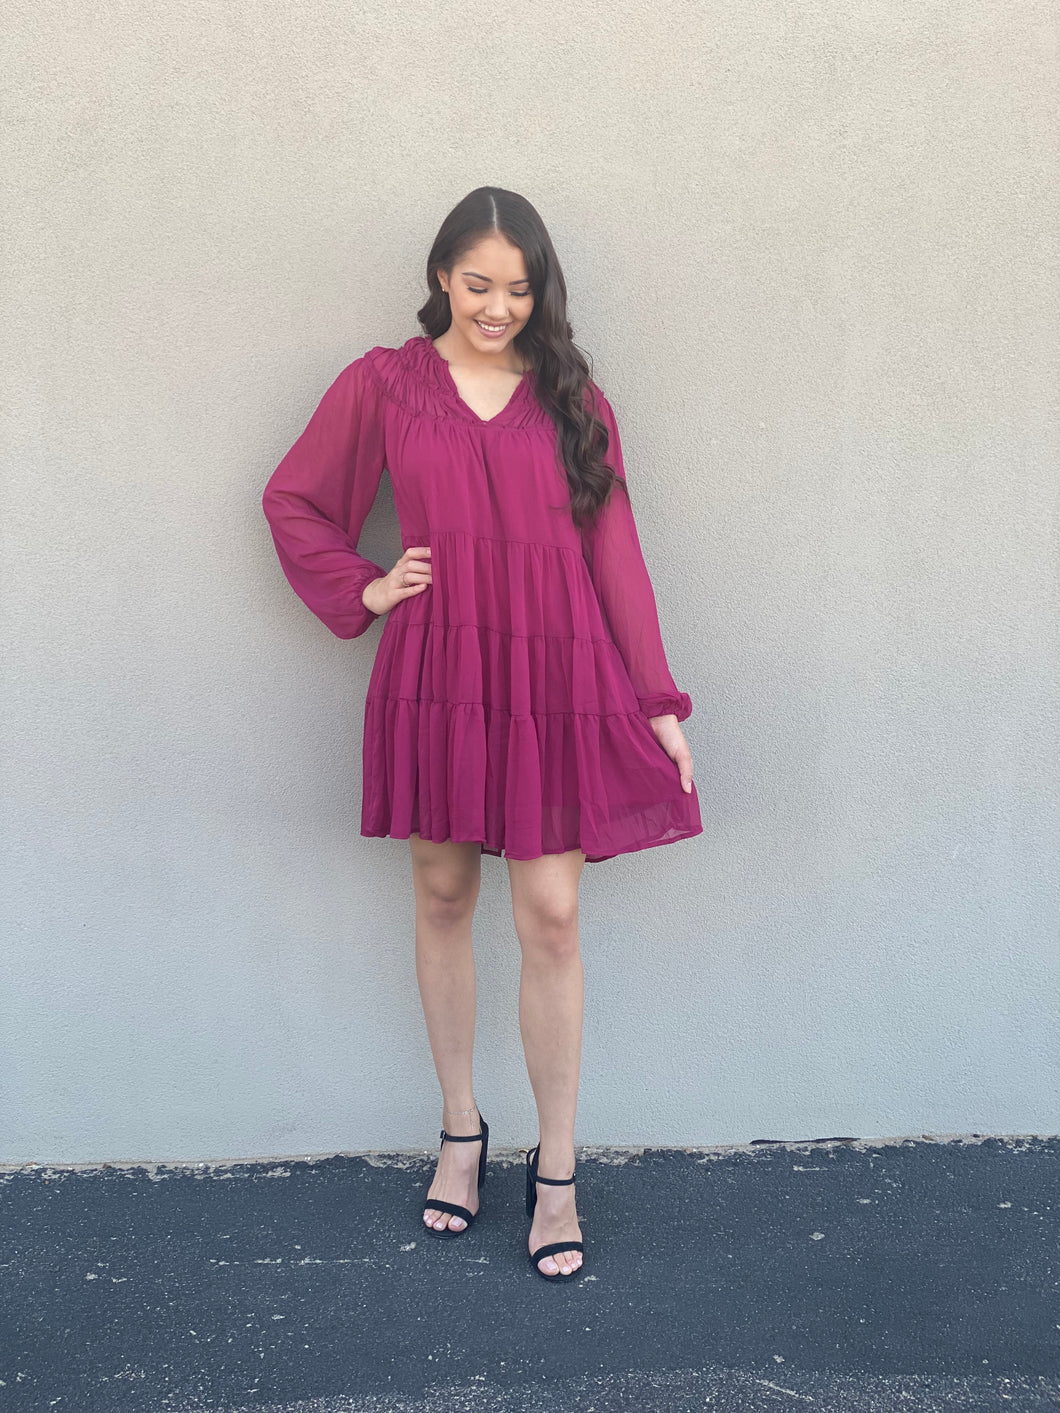 So Berry Fall Dress